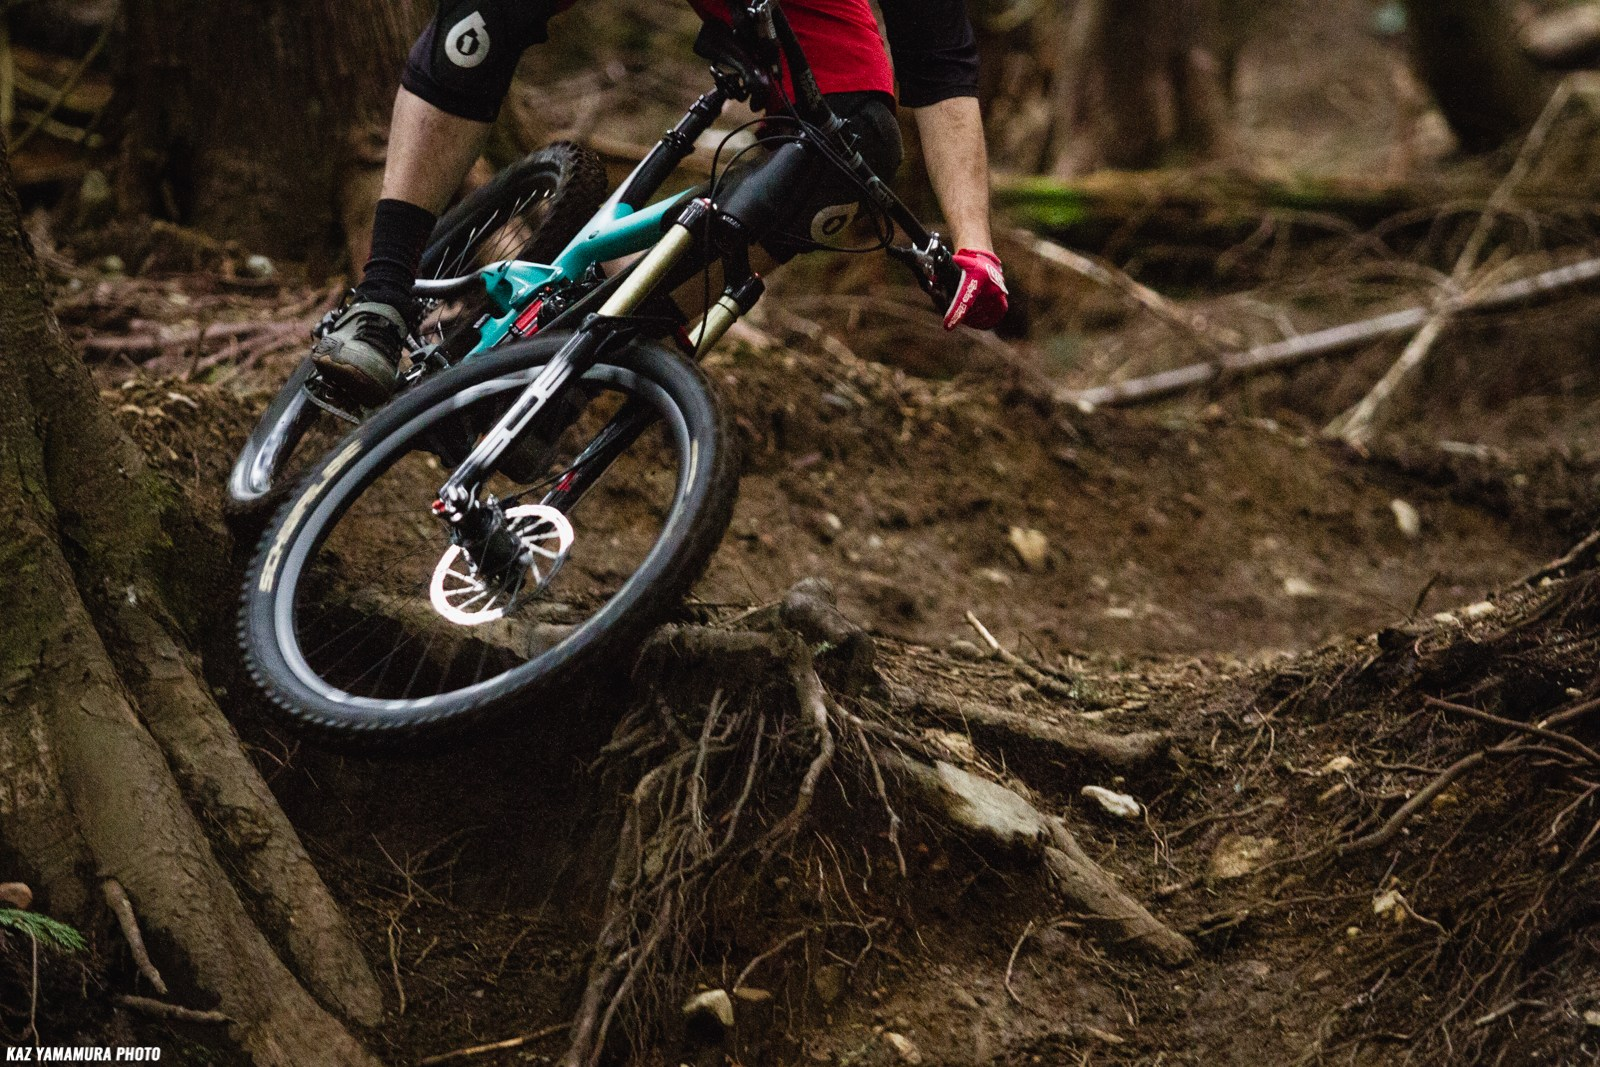 The Shimano AM5 feels equally at home pedaling up as blasting descents